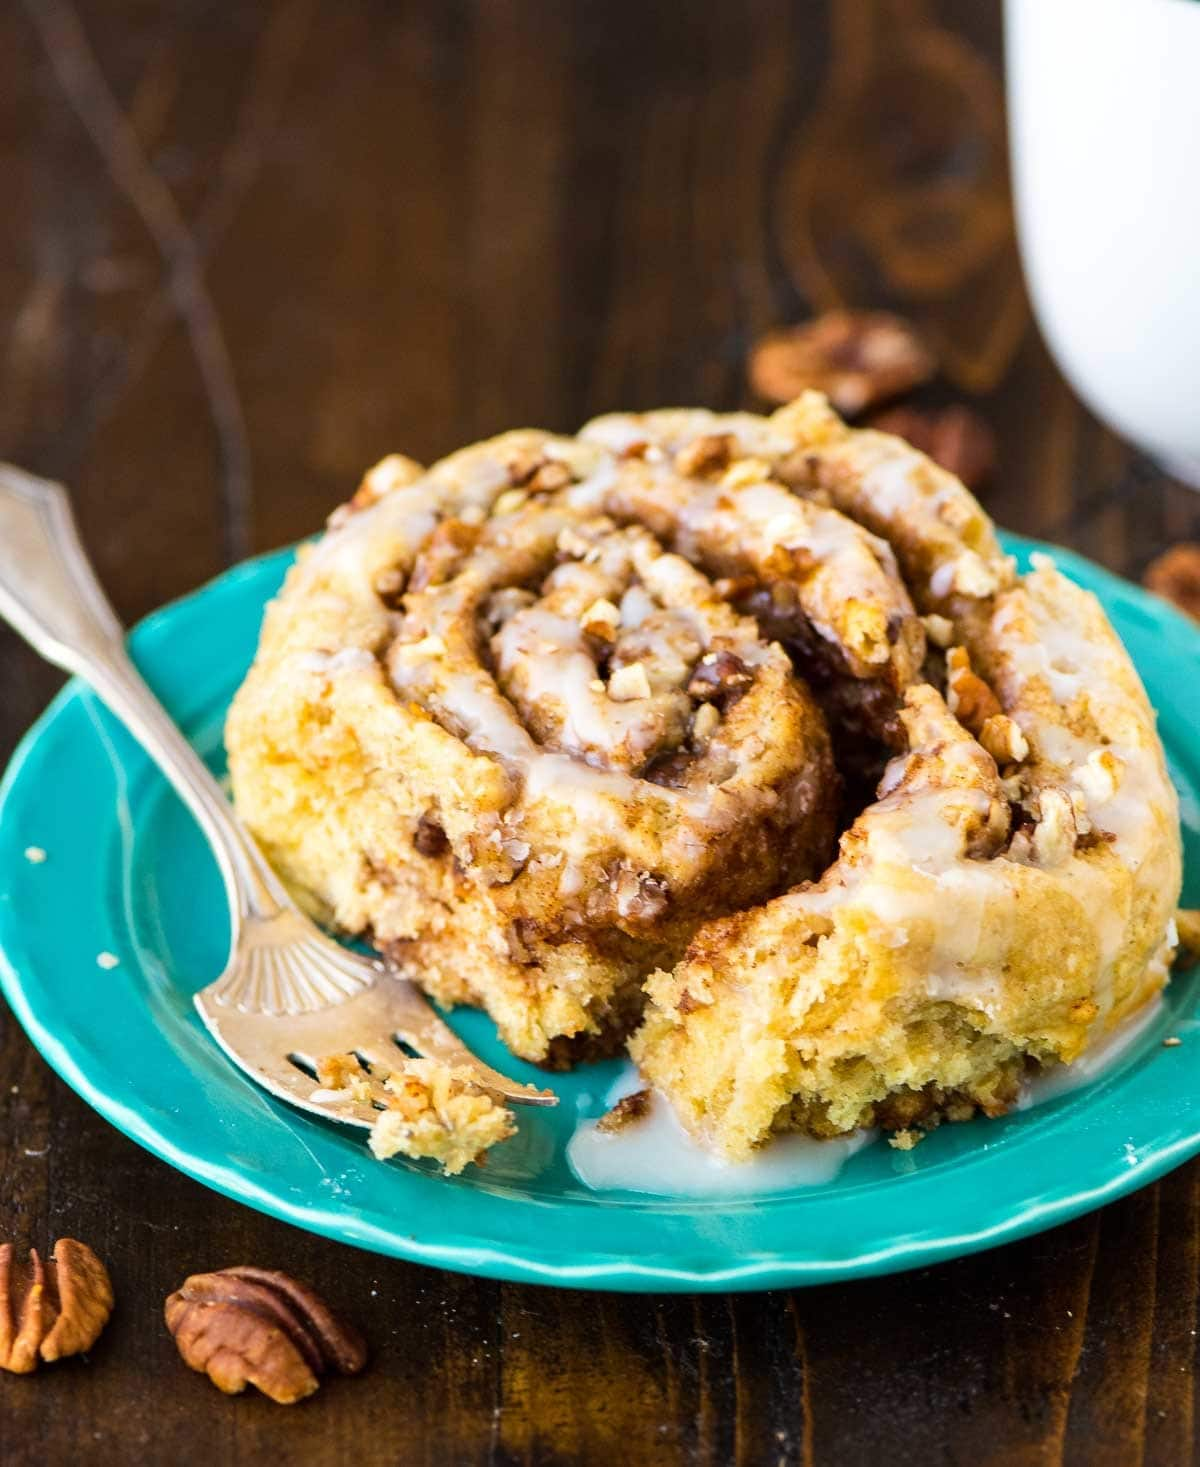 Homemade Biscuit Cinnamon Rolls – Way easier than classic cinnamon rolls and they taste even better! Buttery soft biscuit dough, with a gooey cinnamon sugar filling and buttermilk glaze. TO DIE FOR! Recipe at wellplated.com | @wellplated